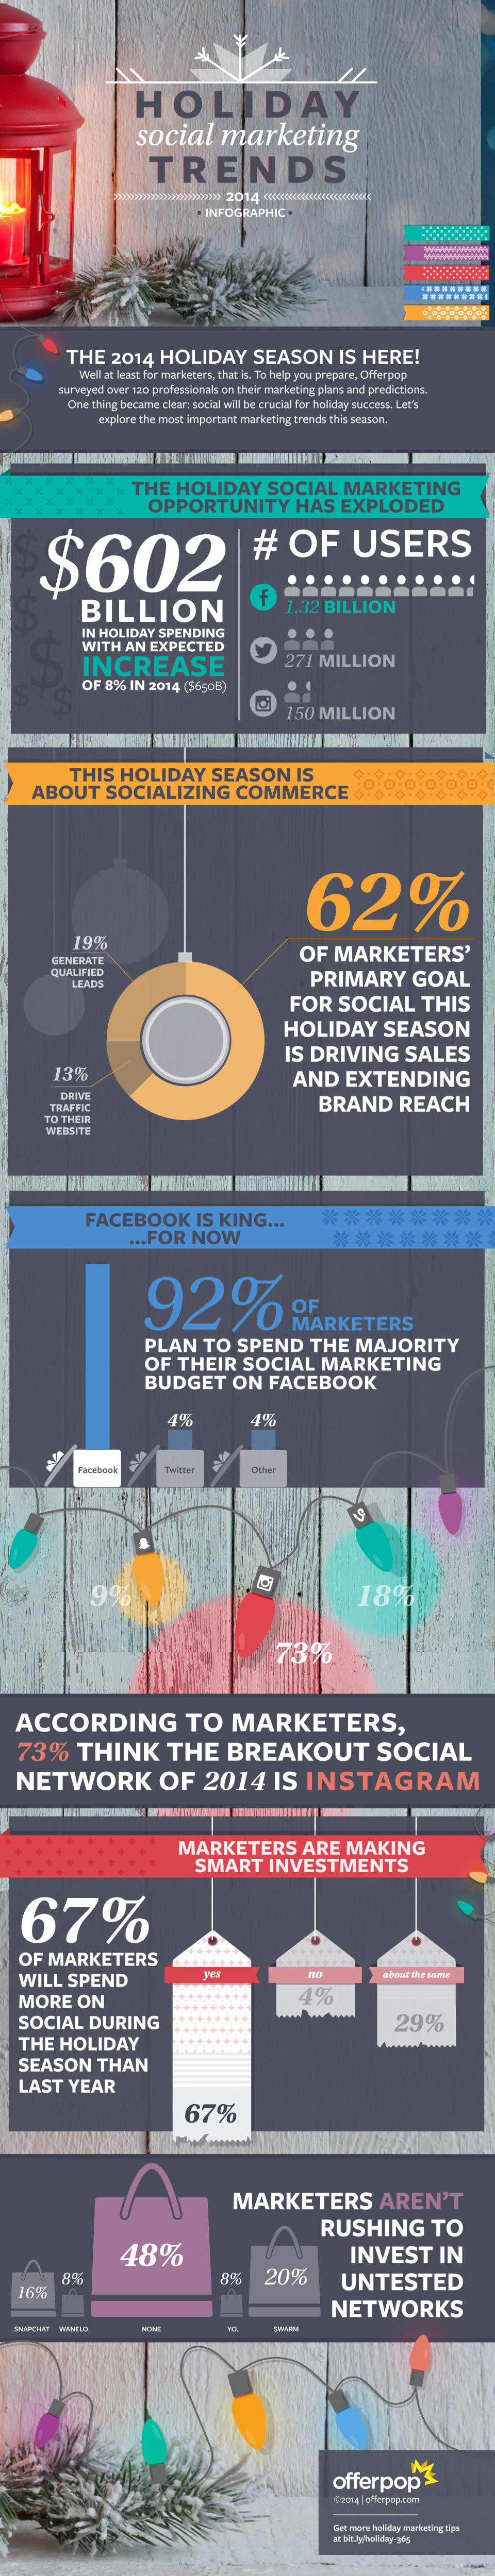 holiday-social-marketing-trends